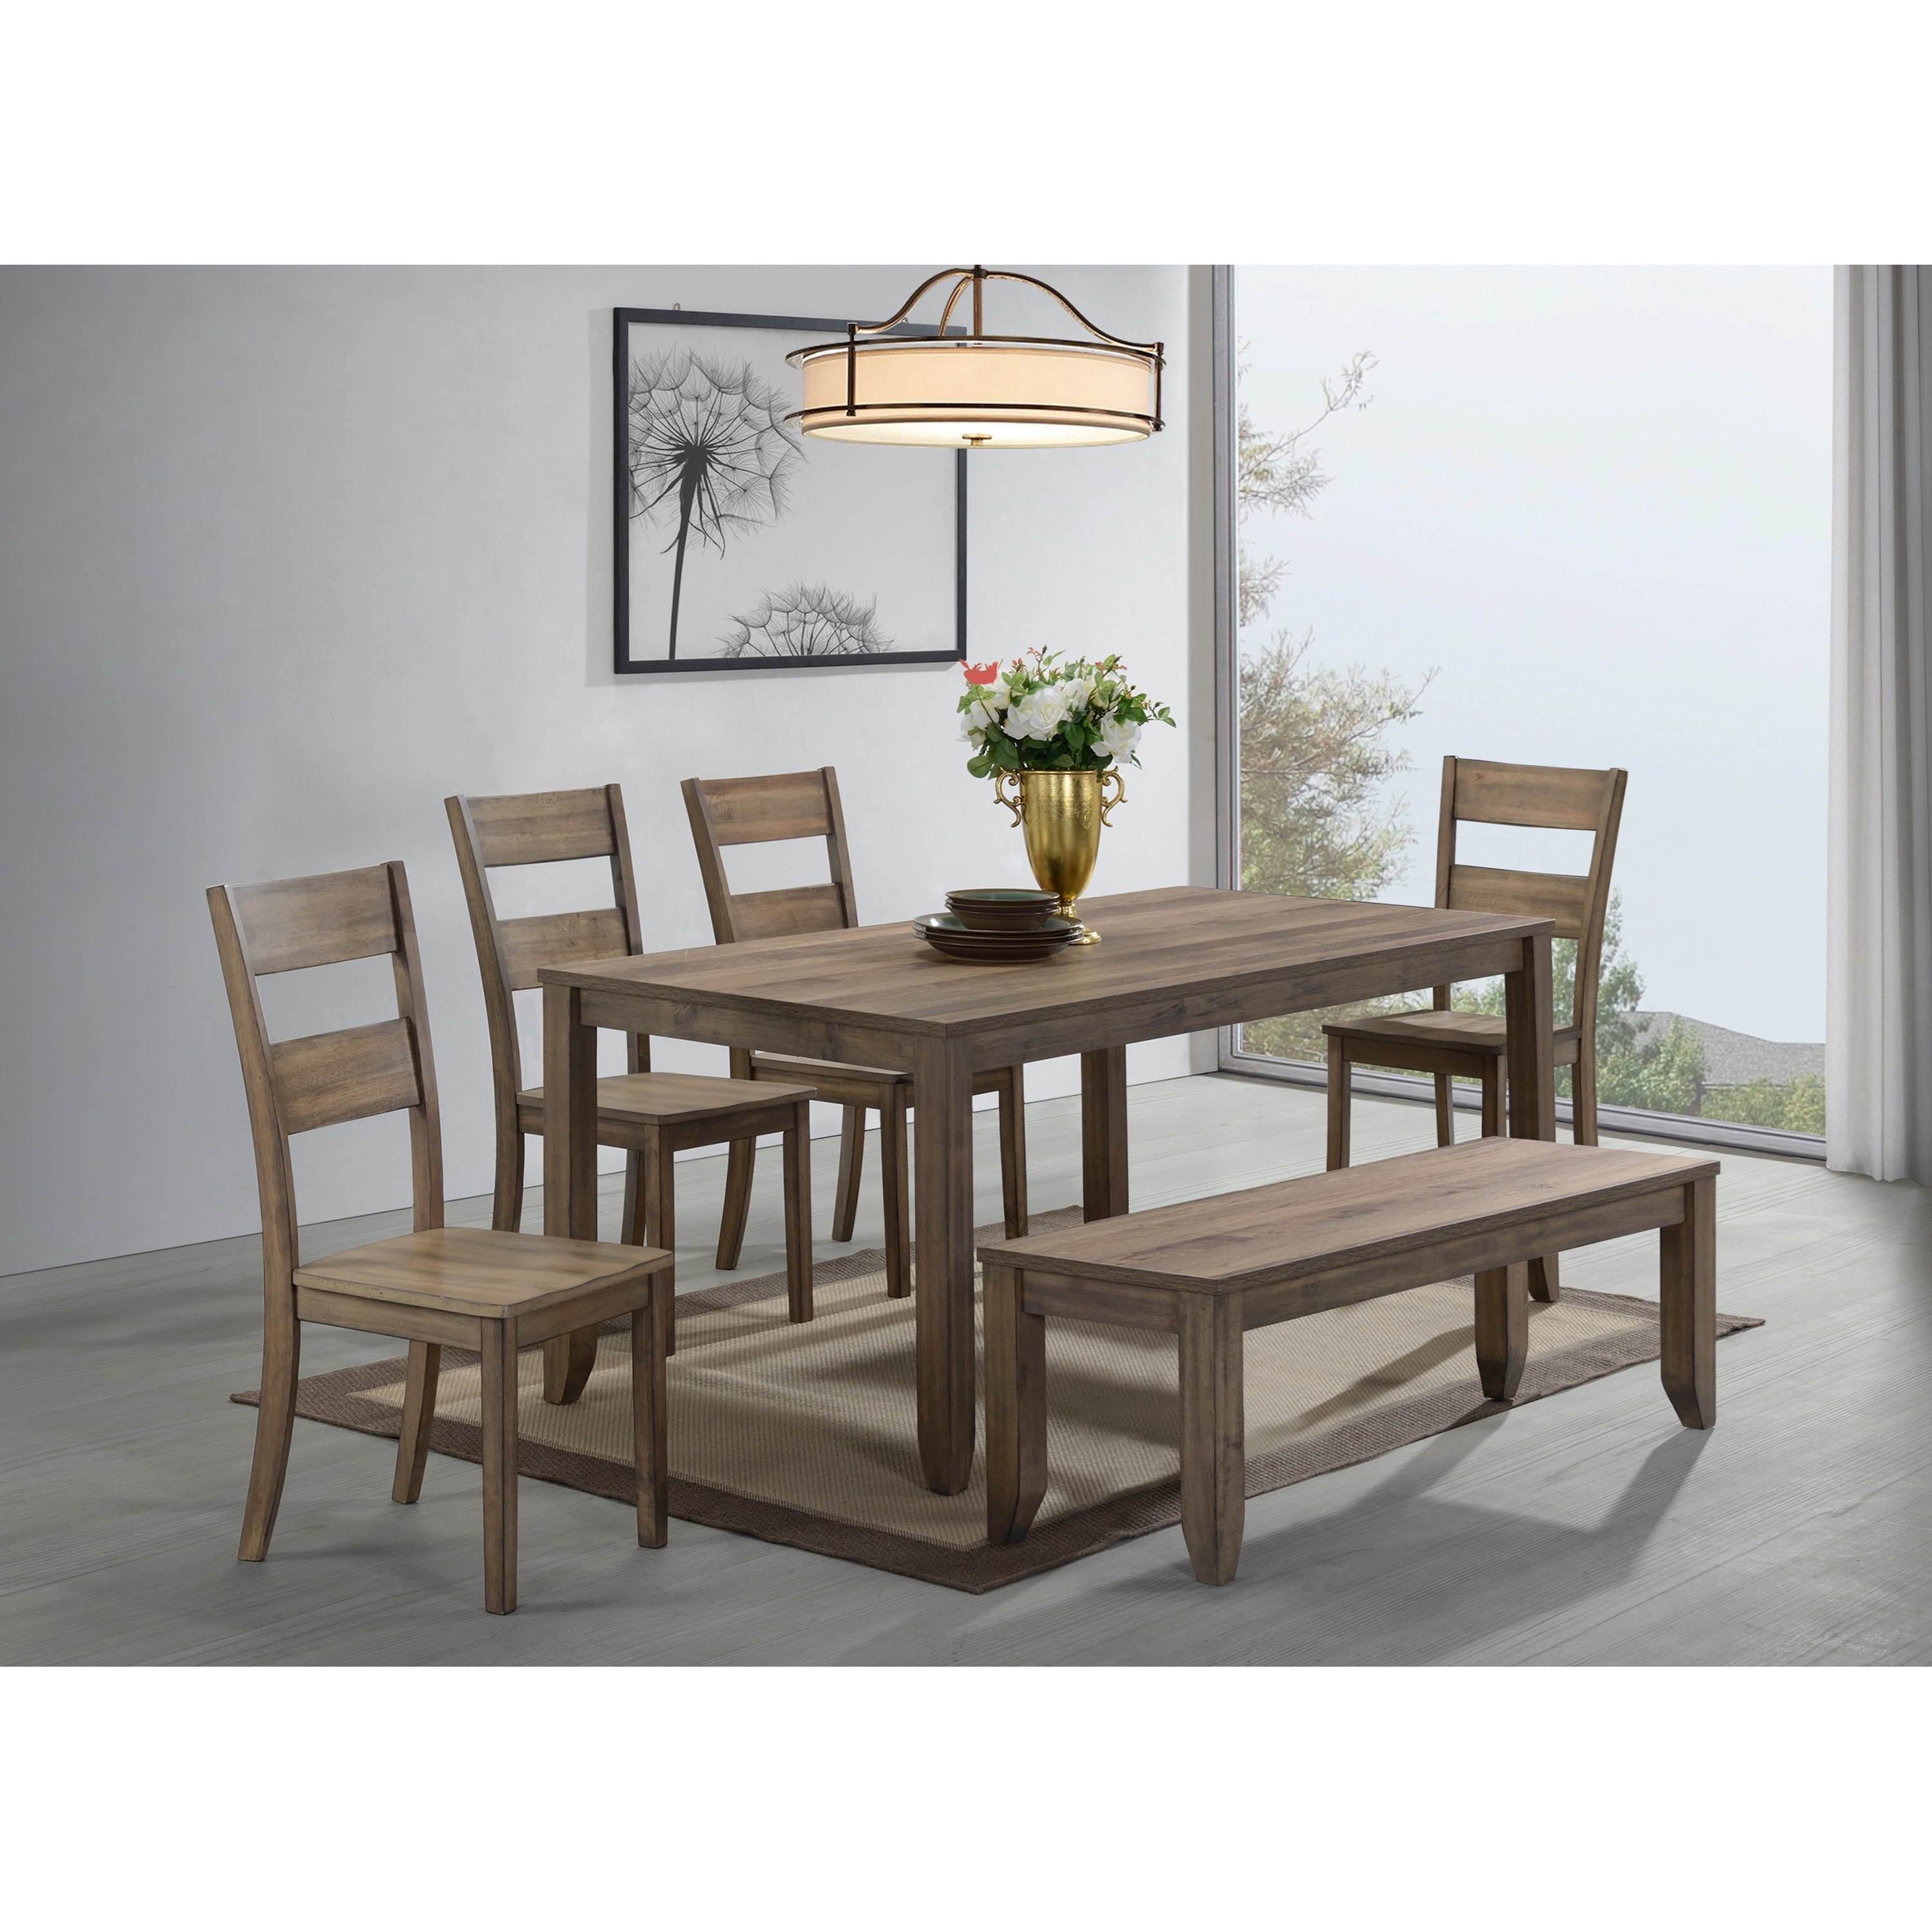 Sean 6 Piece Dining Set with Bench by Crown Mark at Northeast Factory Direct